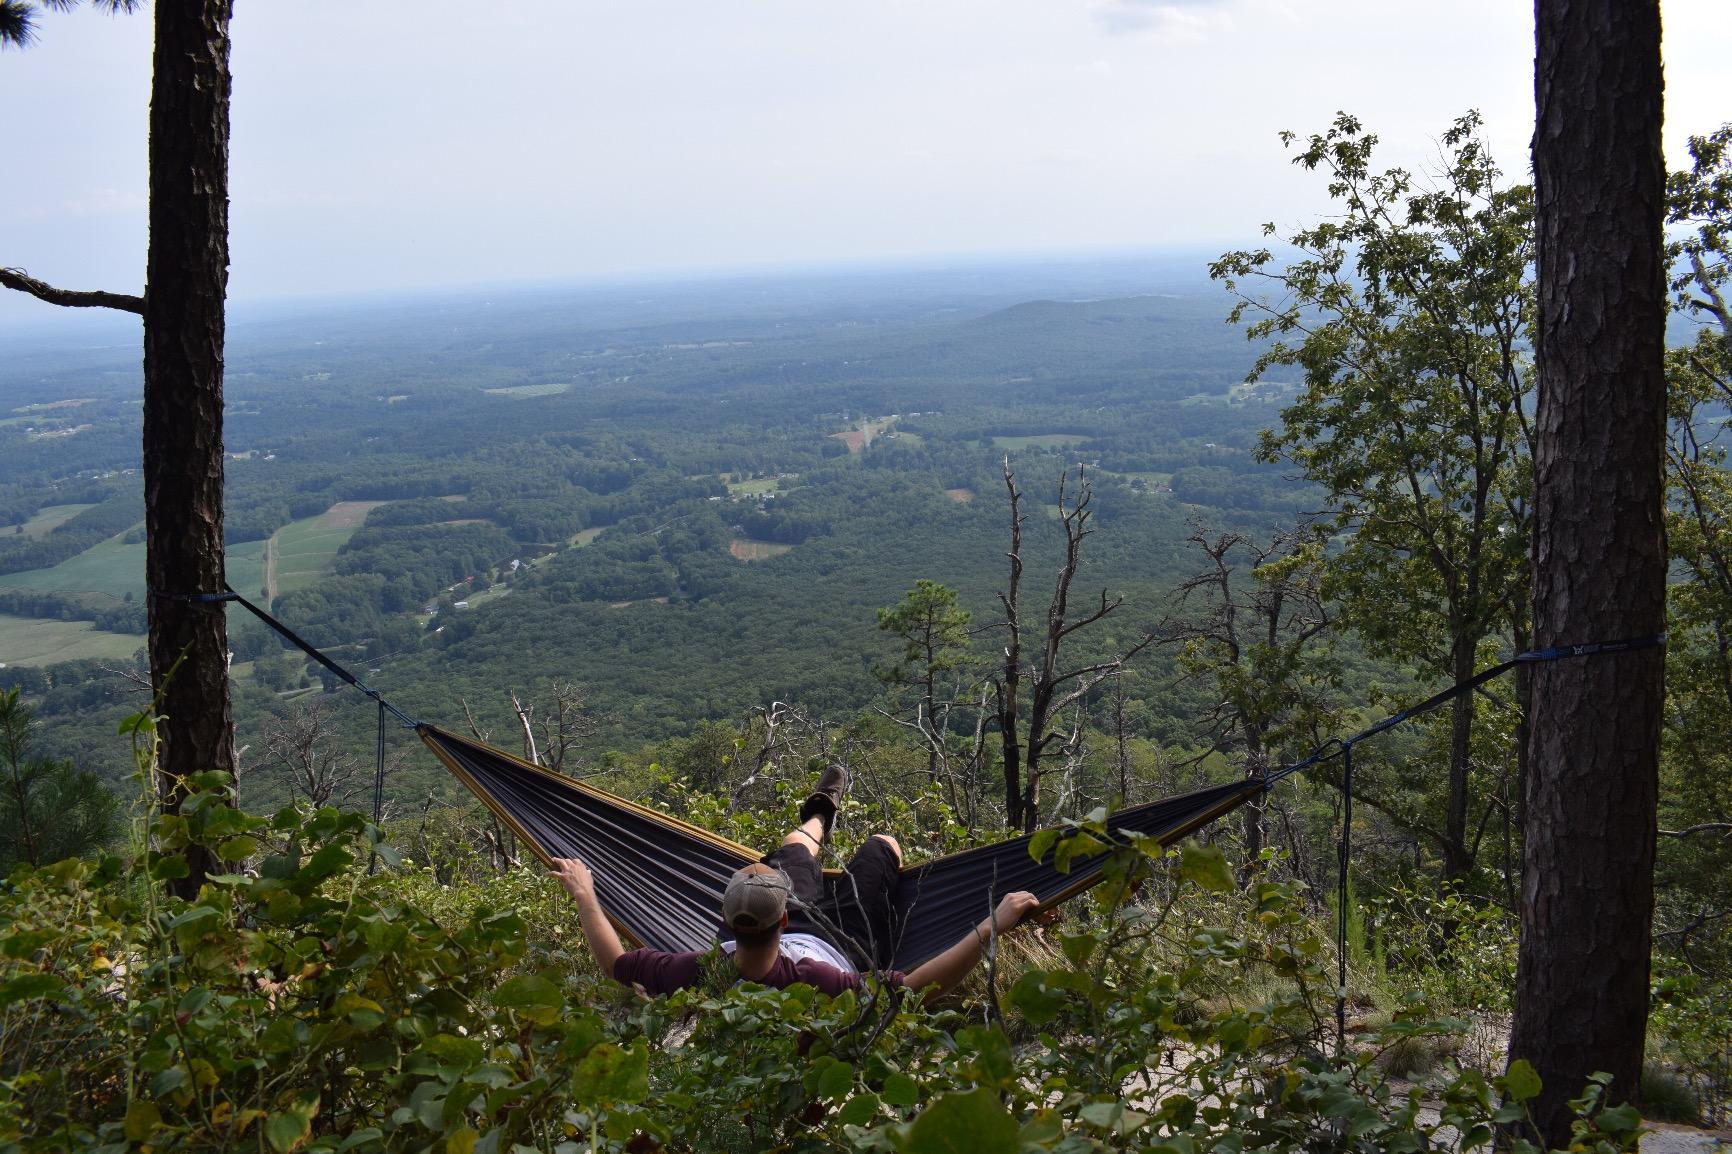 How To Select The Best Double Hammock For Camping Activities